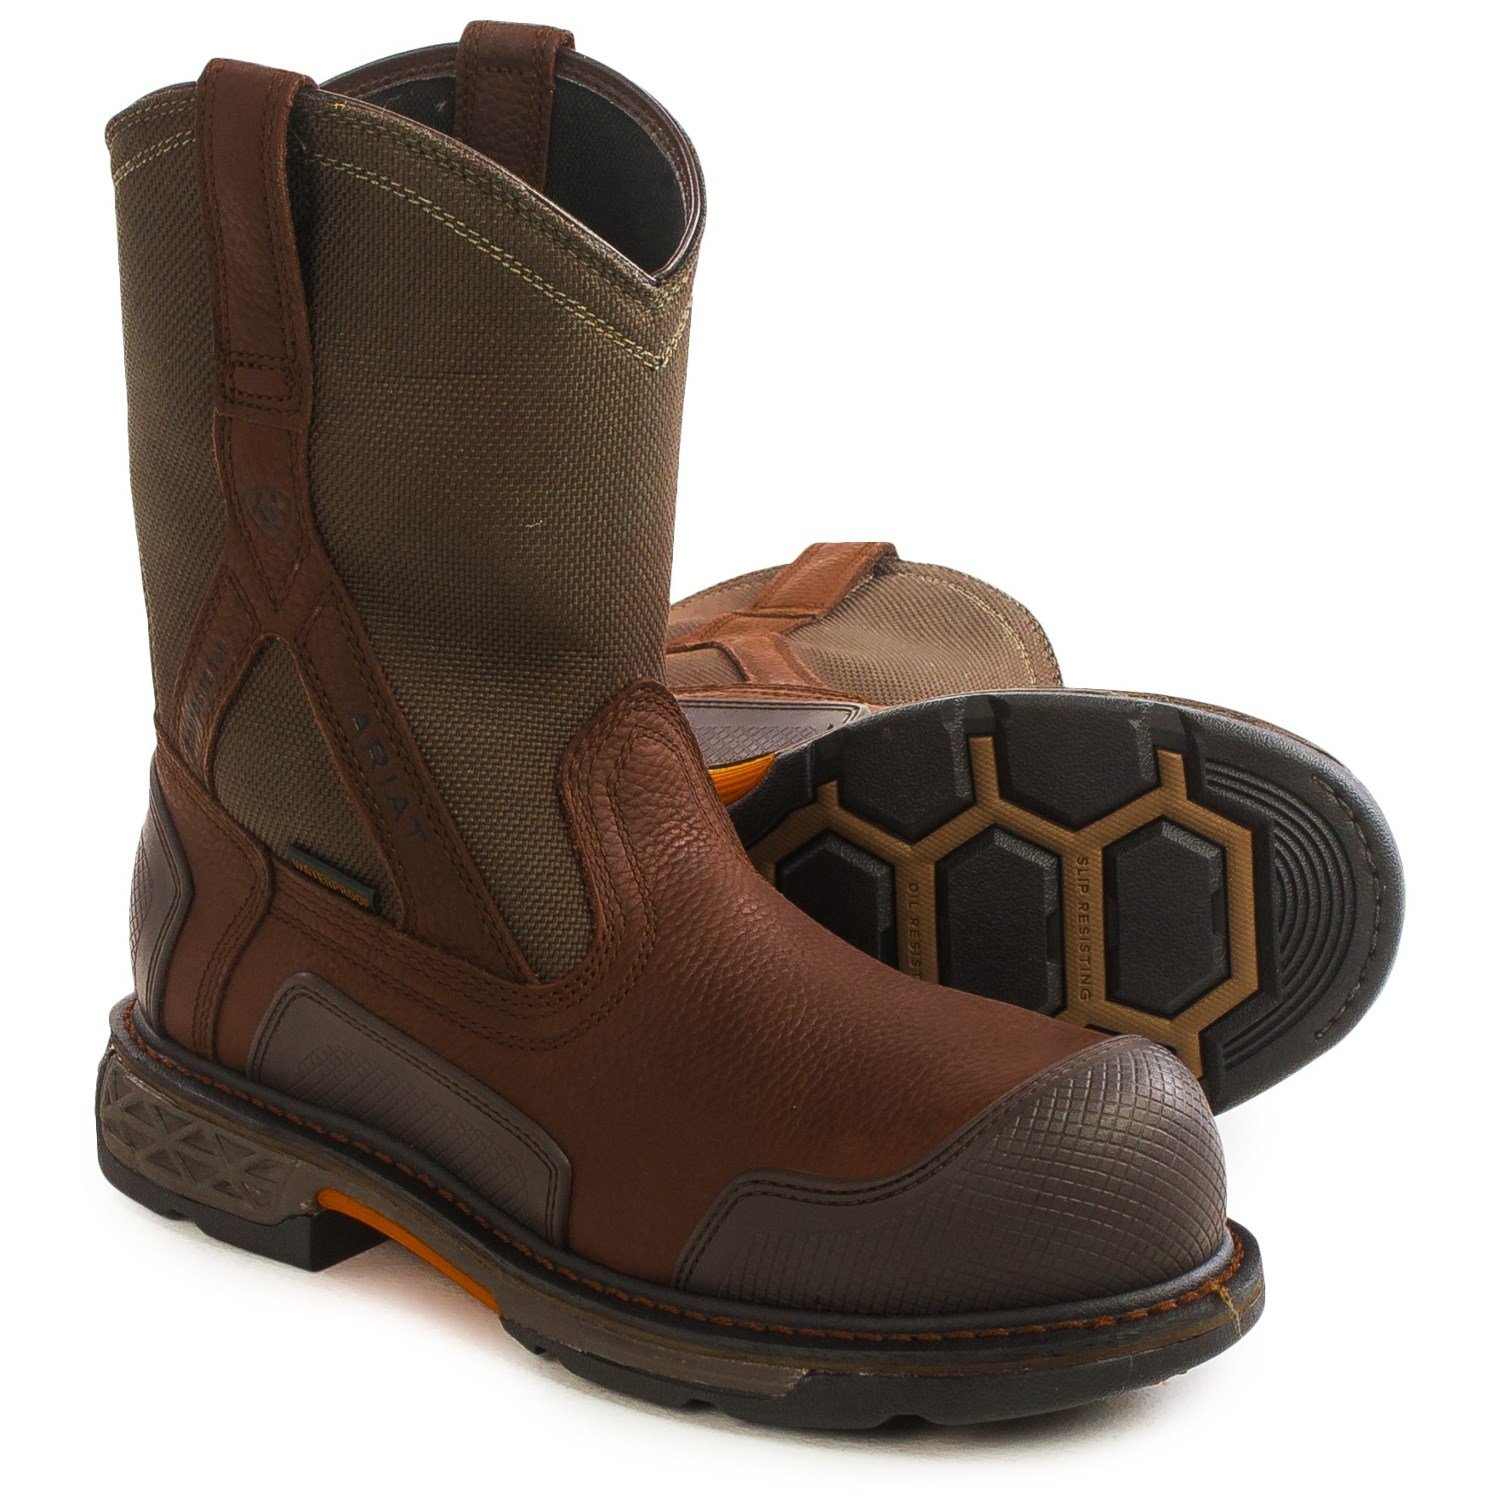 Cheap Work Boots For Sale Online J9HYM7Dd